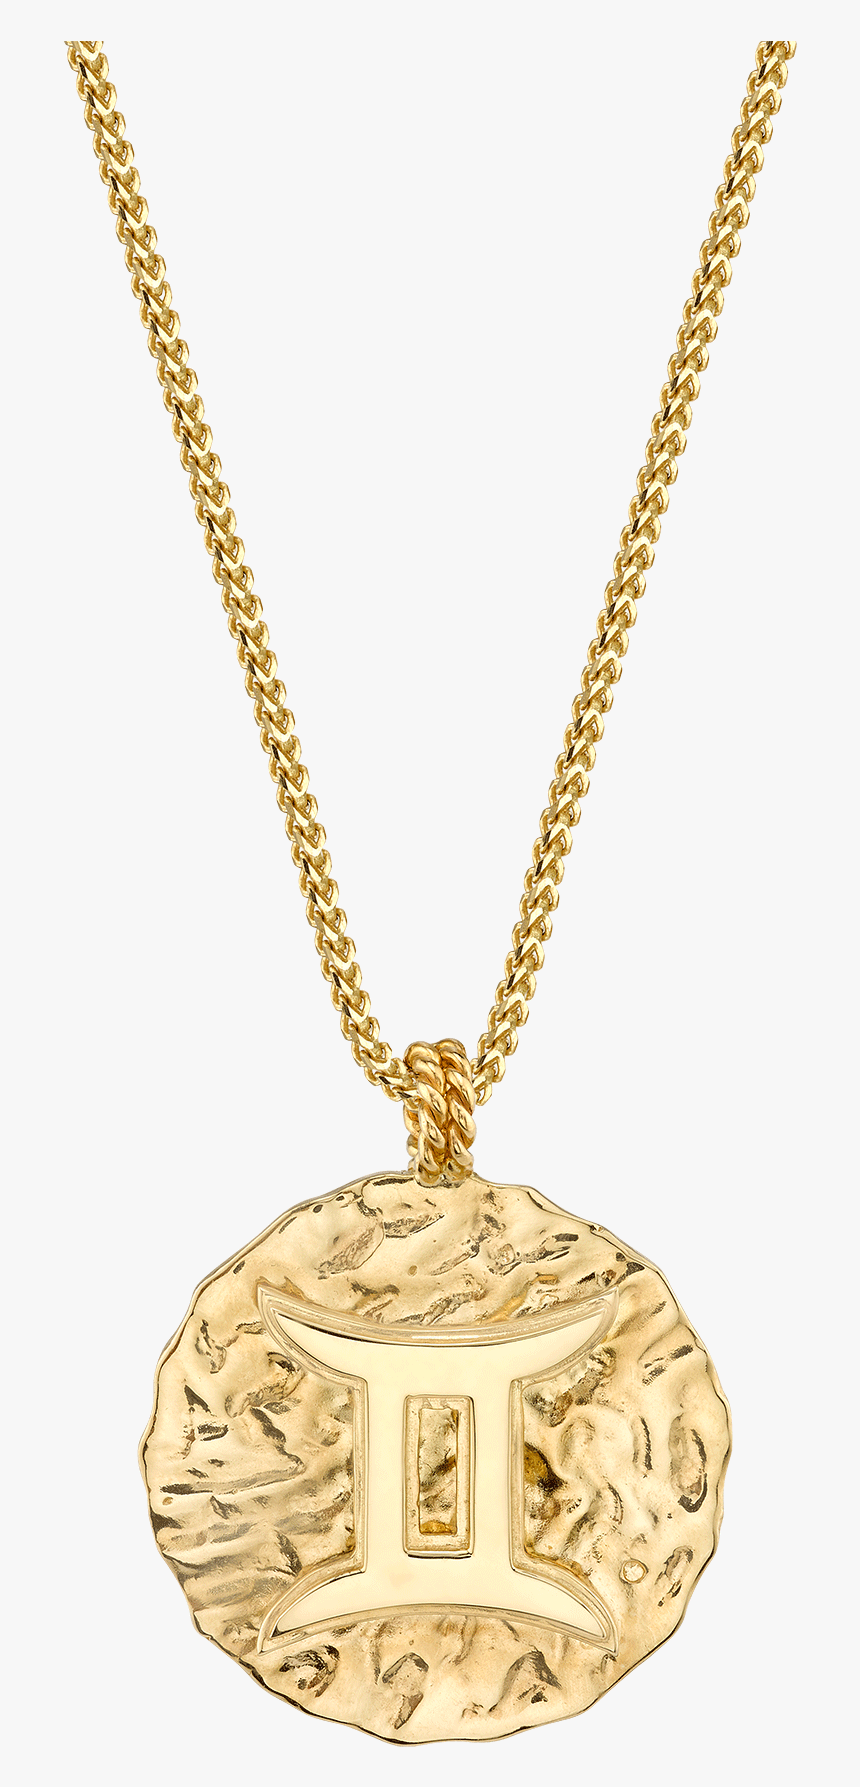 Amber Sceats ™ Double Coin Necklace, HD Png Download, Free Download